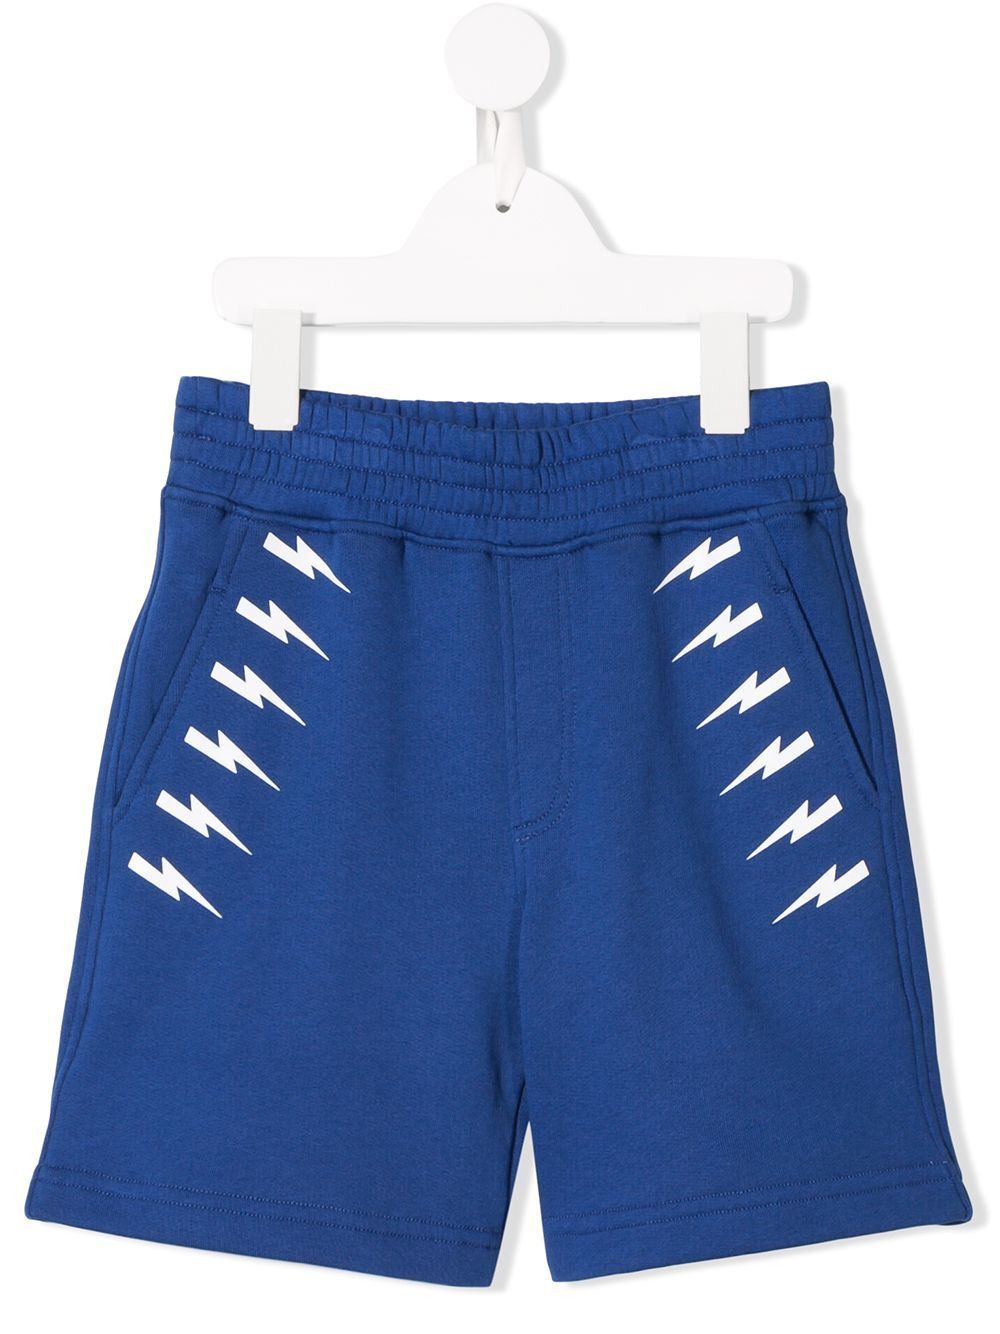 NEIL BARRETT KIDS lightning logo print track shorts | Neil Barrett Kids